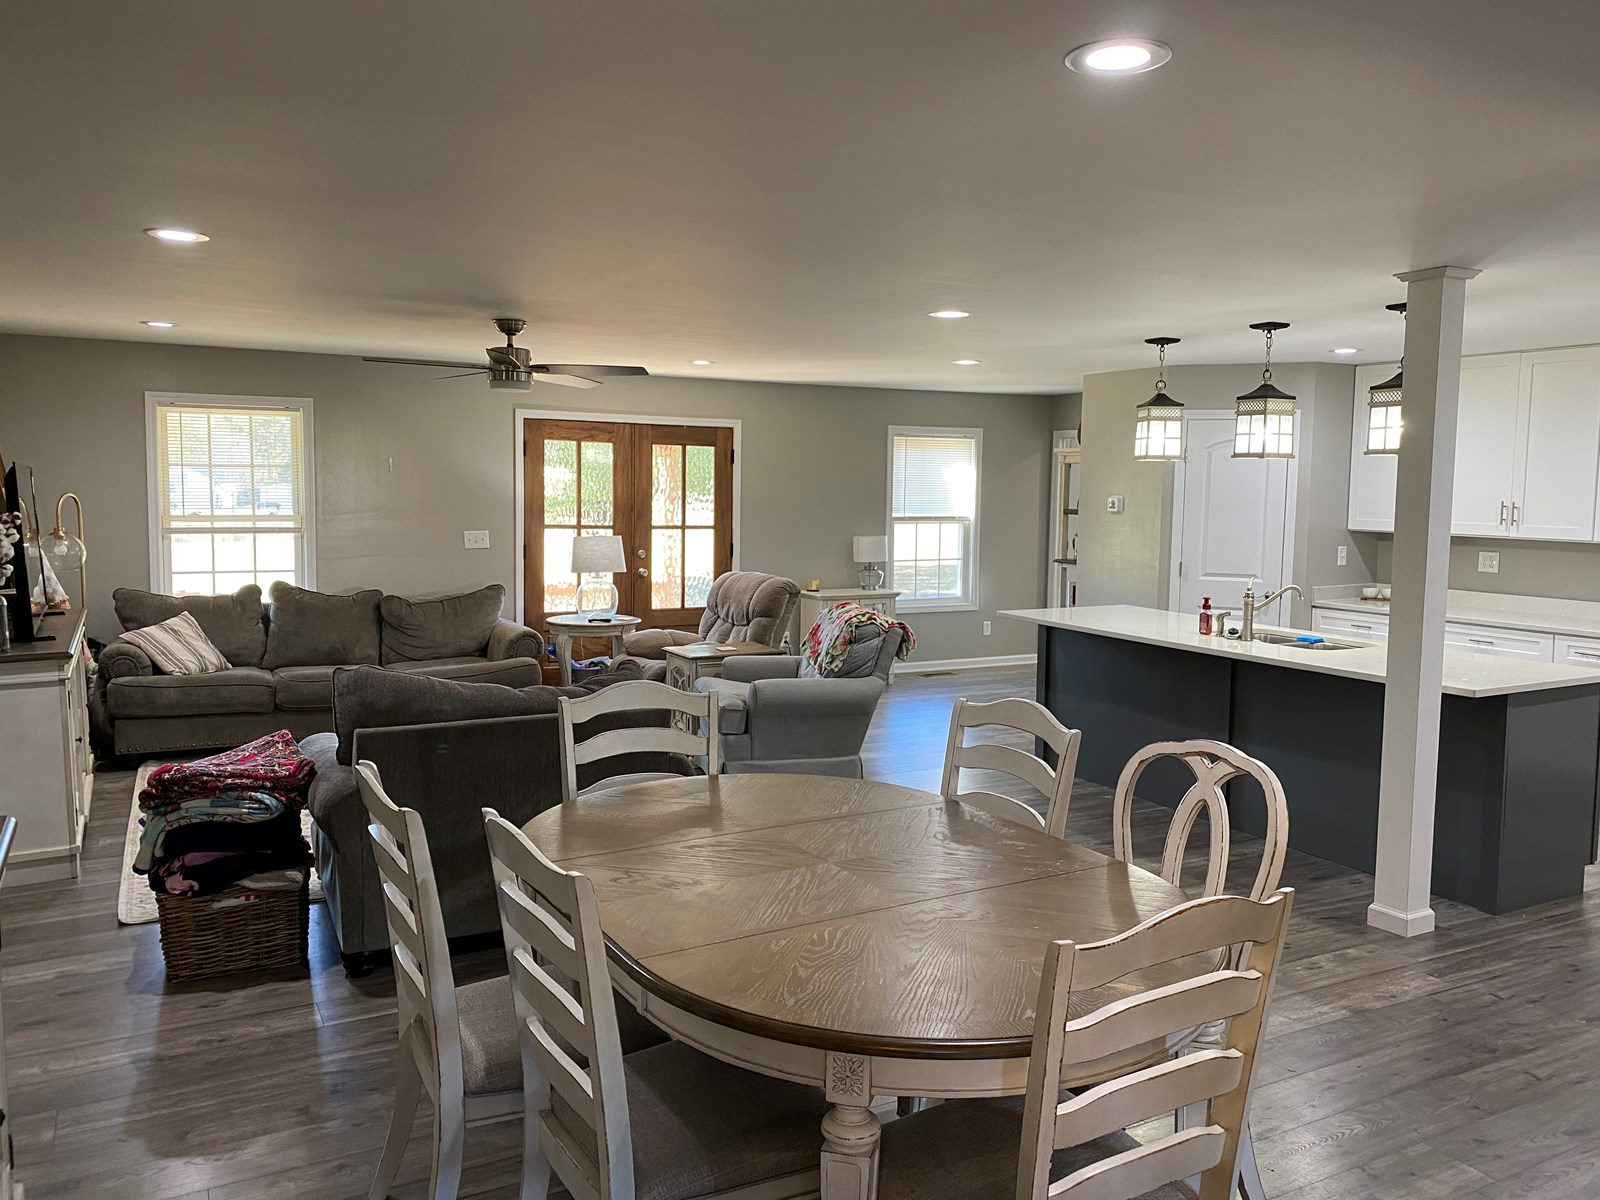 REMODELED COUNTRY HOME IN TN FOR SALE, SHOP & CREEK 4 ACRES